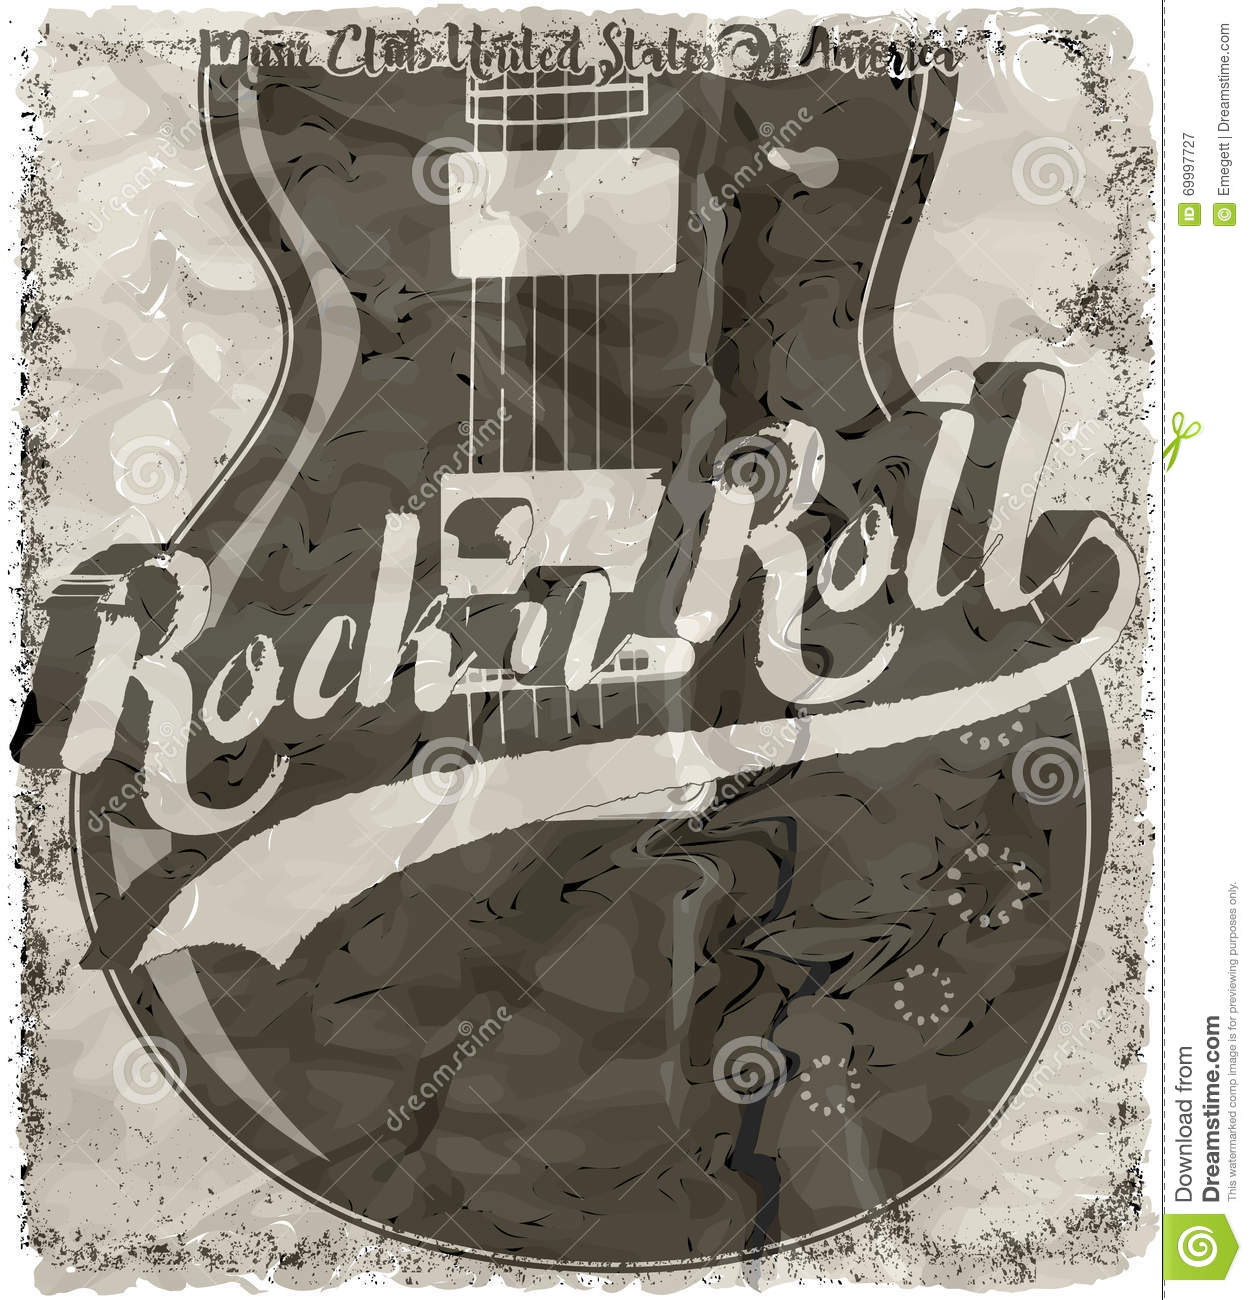 Rock n roll poster design - Art Design Fashion Graphic Guitar New Poster Rock Roll